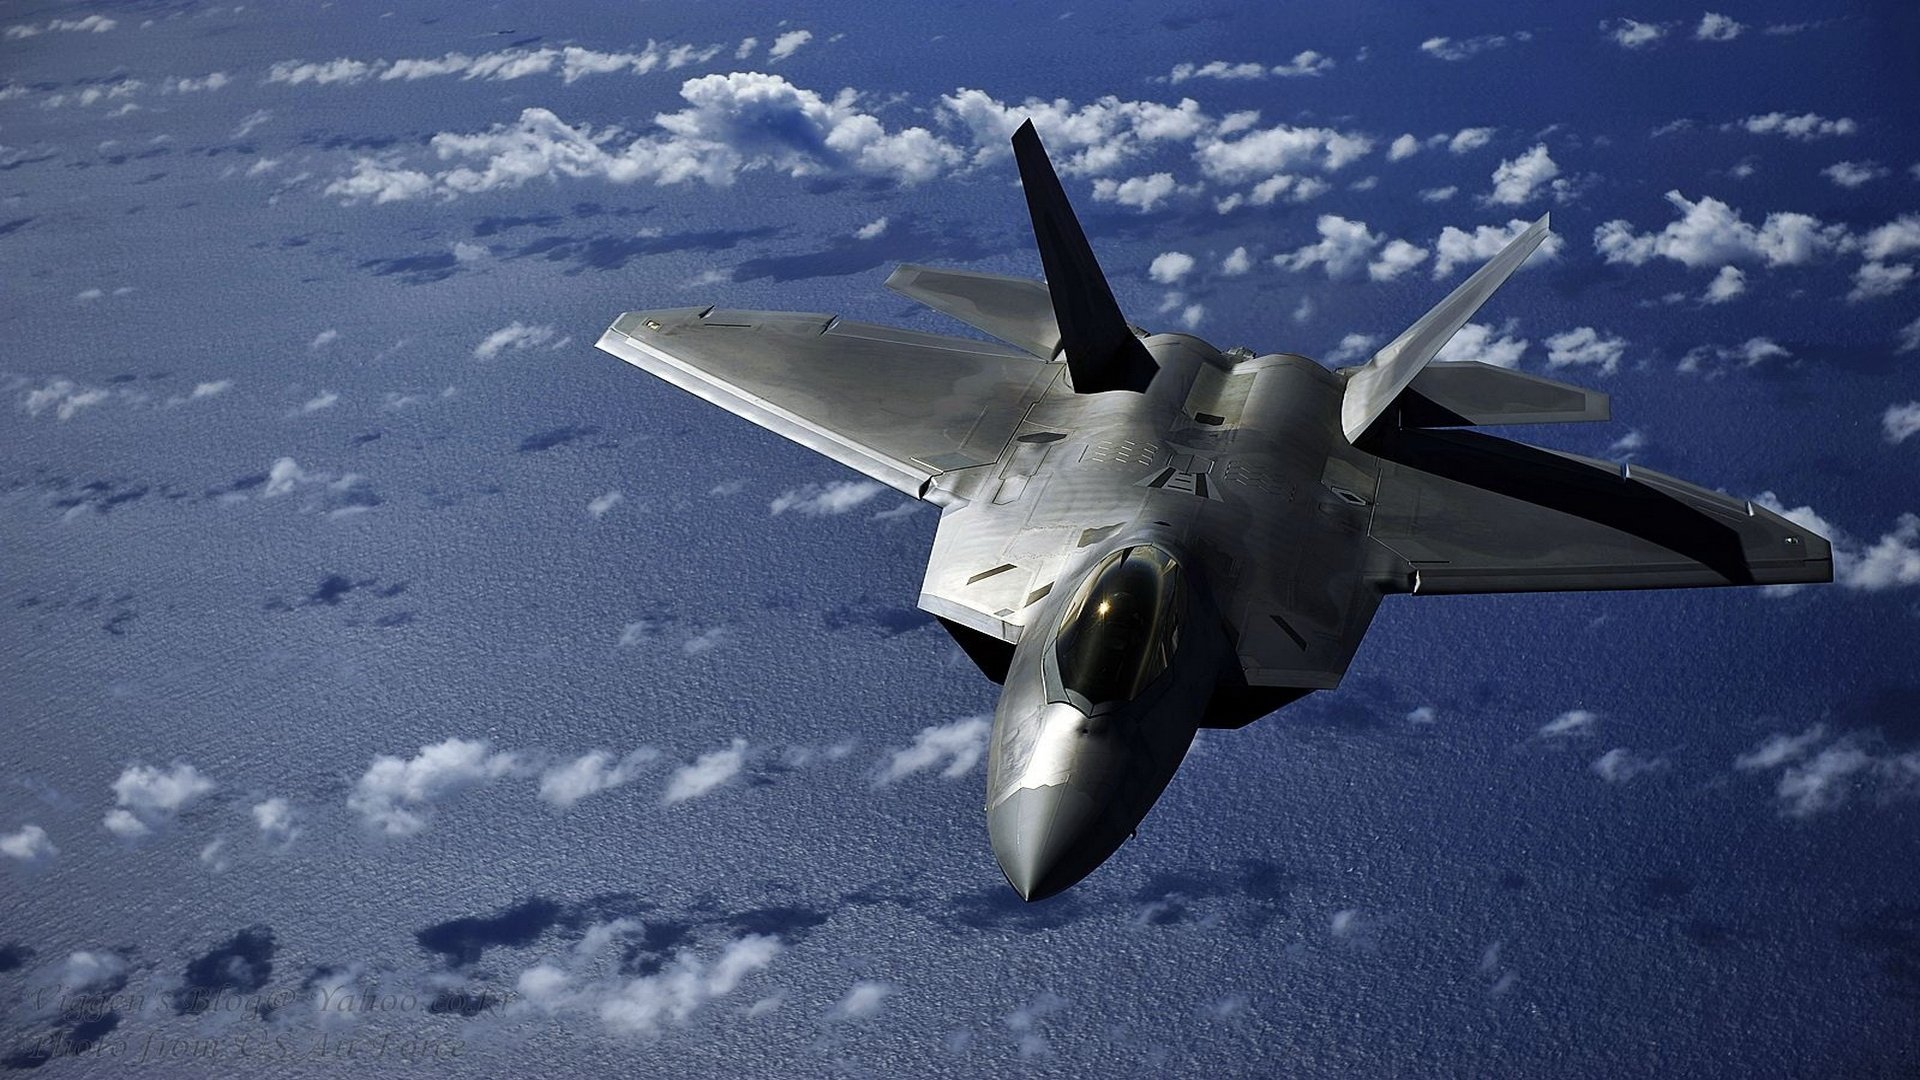 F 22 Raptor Wallpapers Full HD Pictures 1920x1080